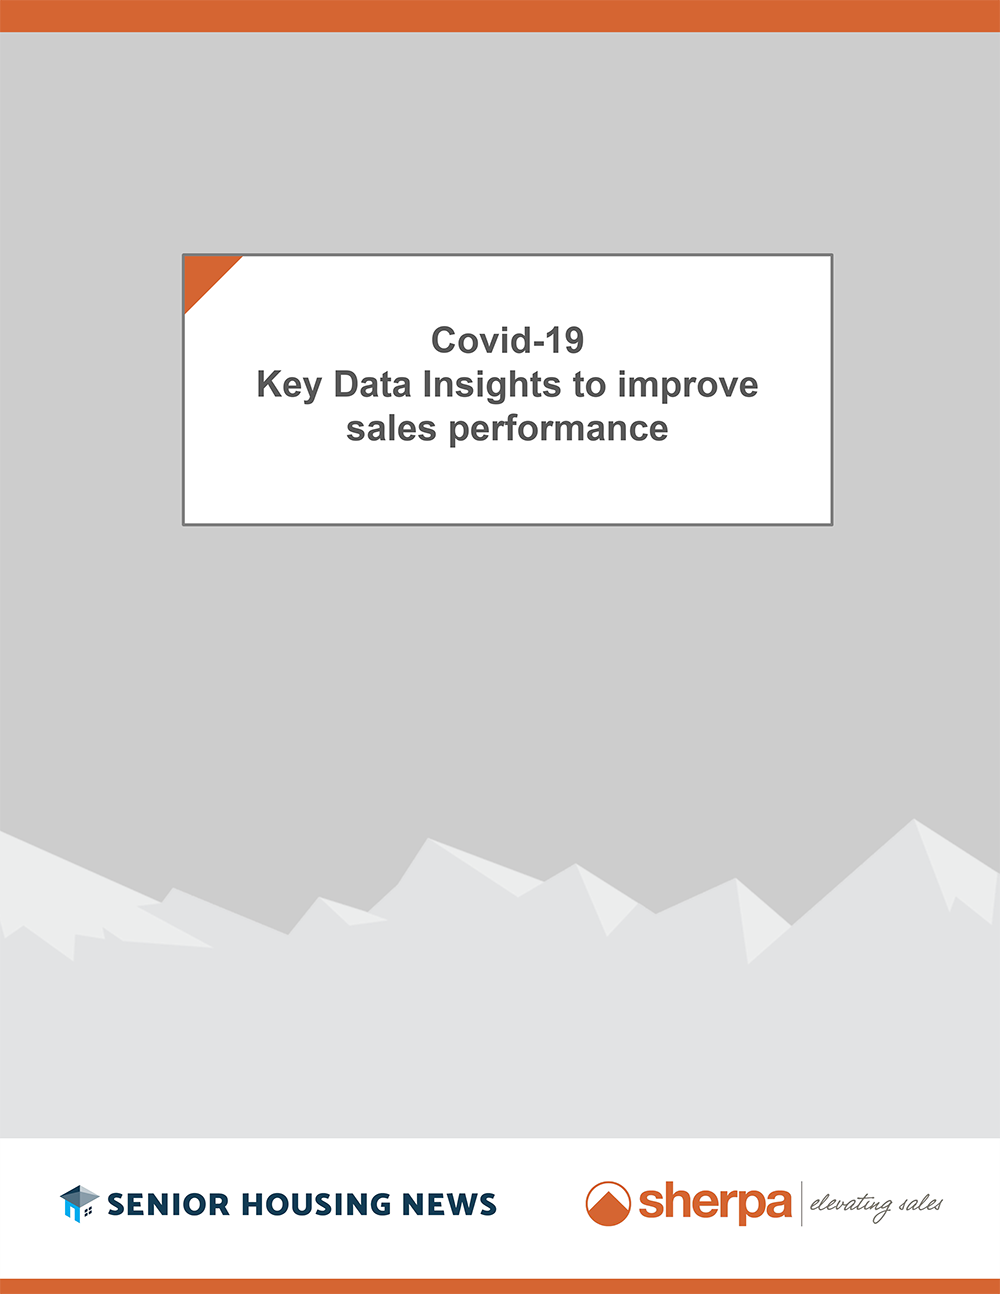 [Webinar] Covid-19 Key Data Insights to improve sales performance